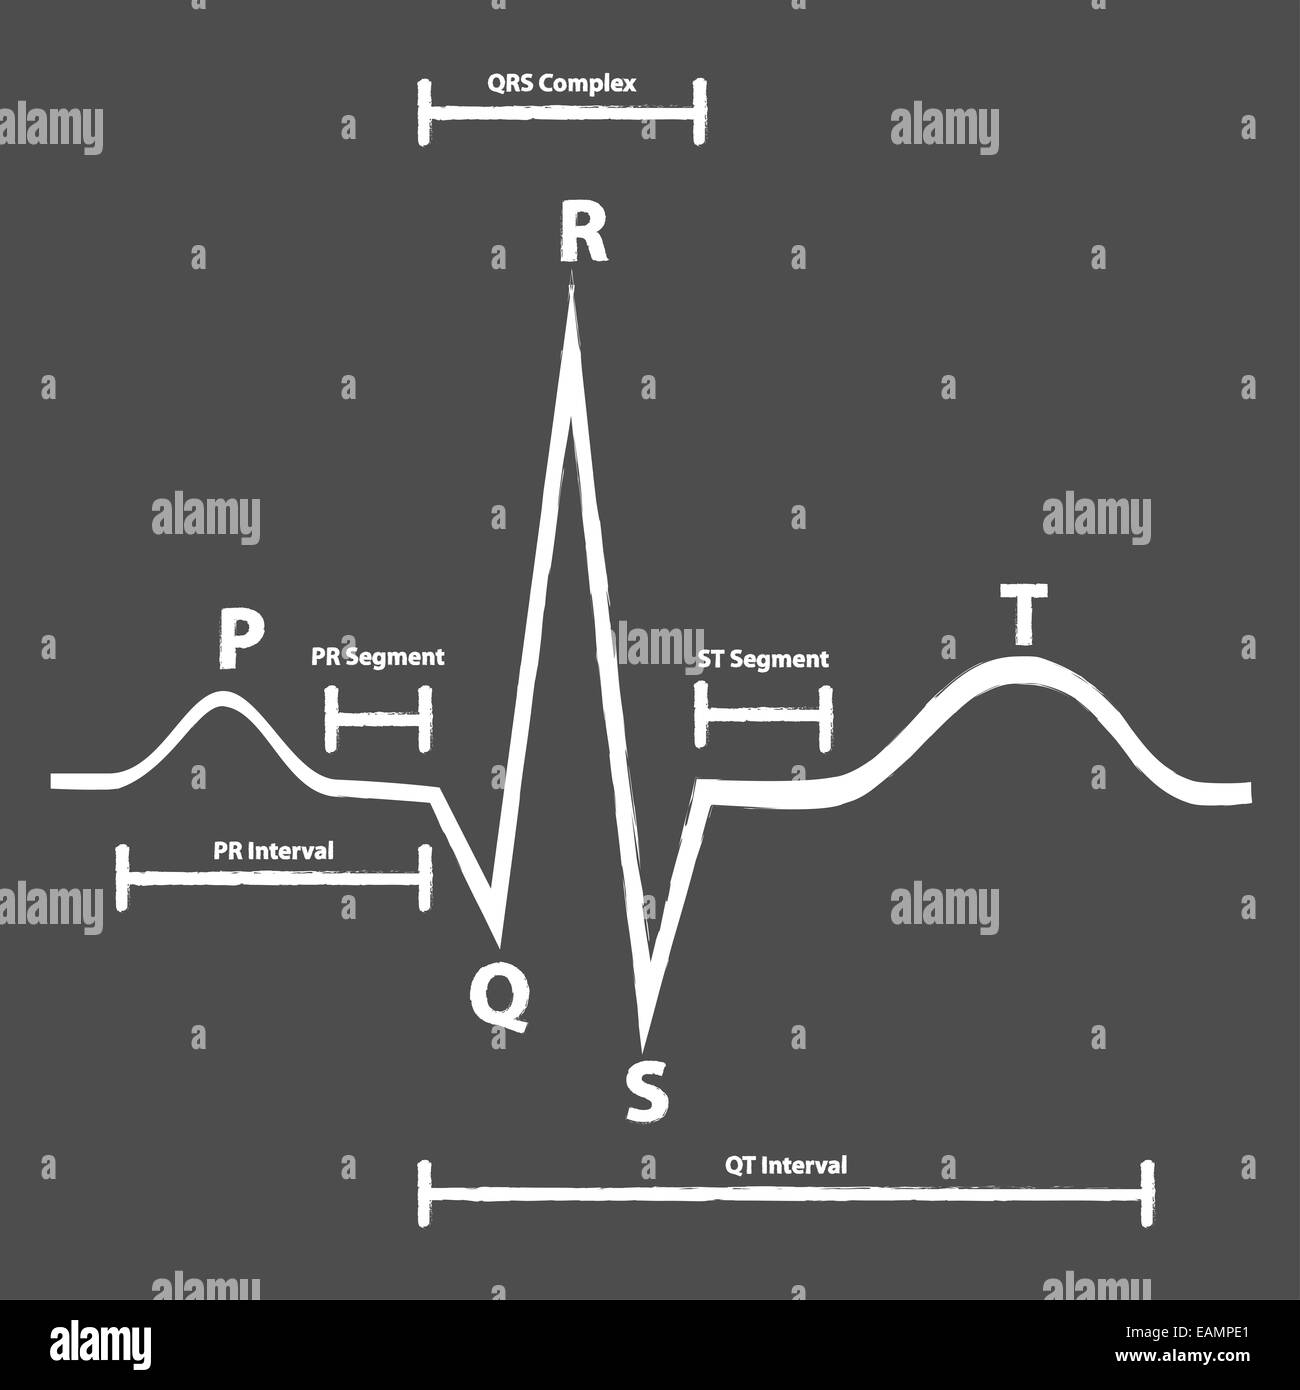 Treadmill Stress Test Negative: Electrocardiogram Machine Stock Photos & Electrocardiogram